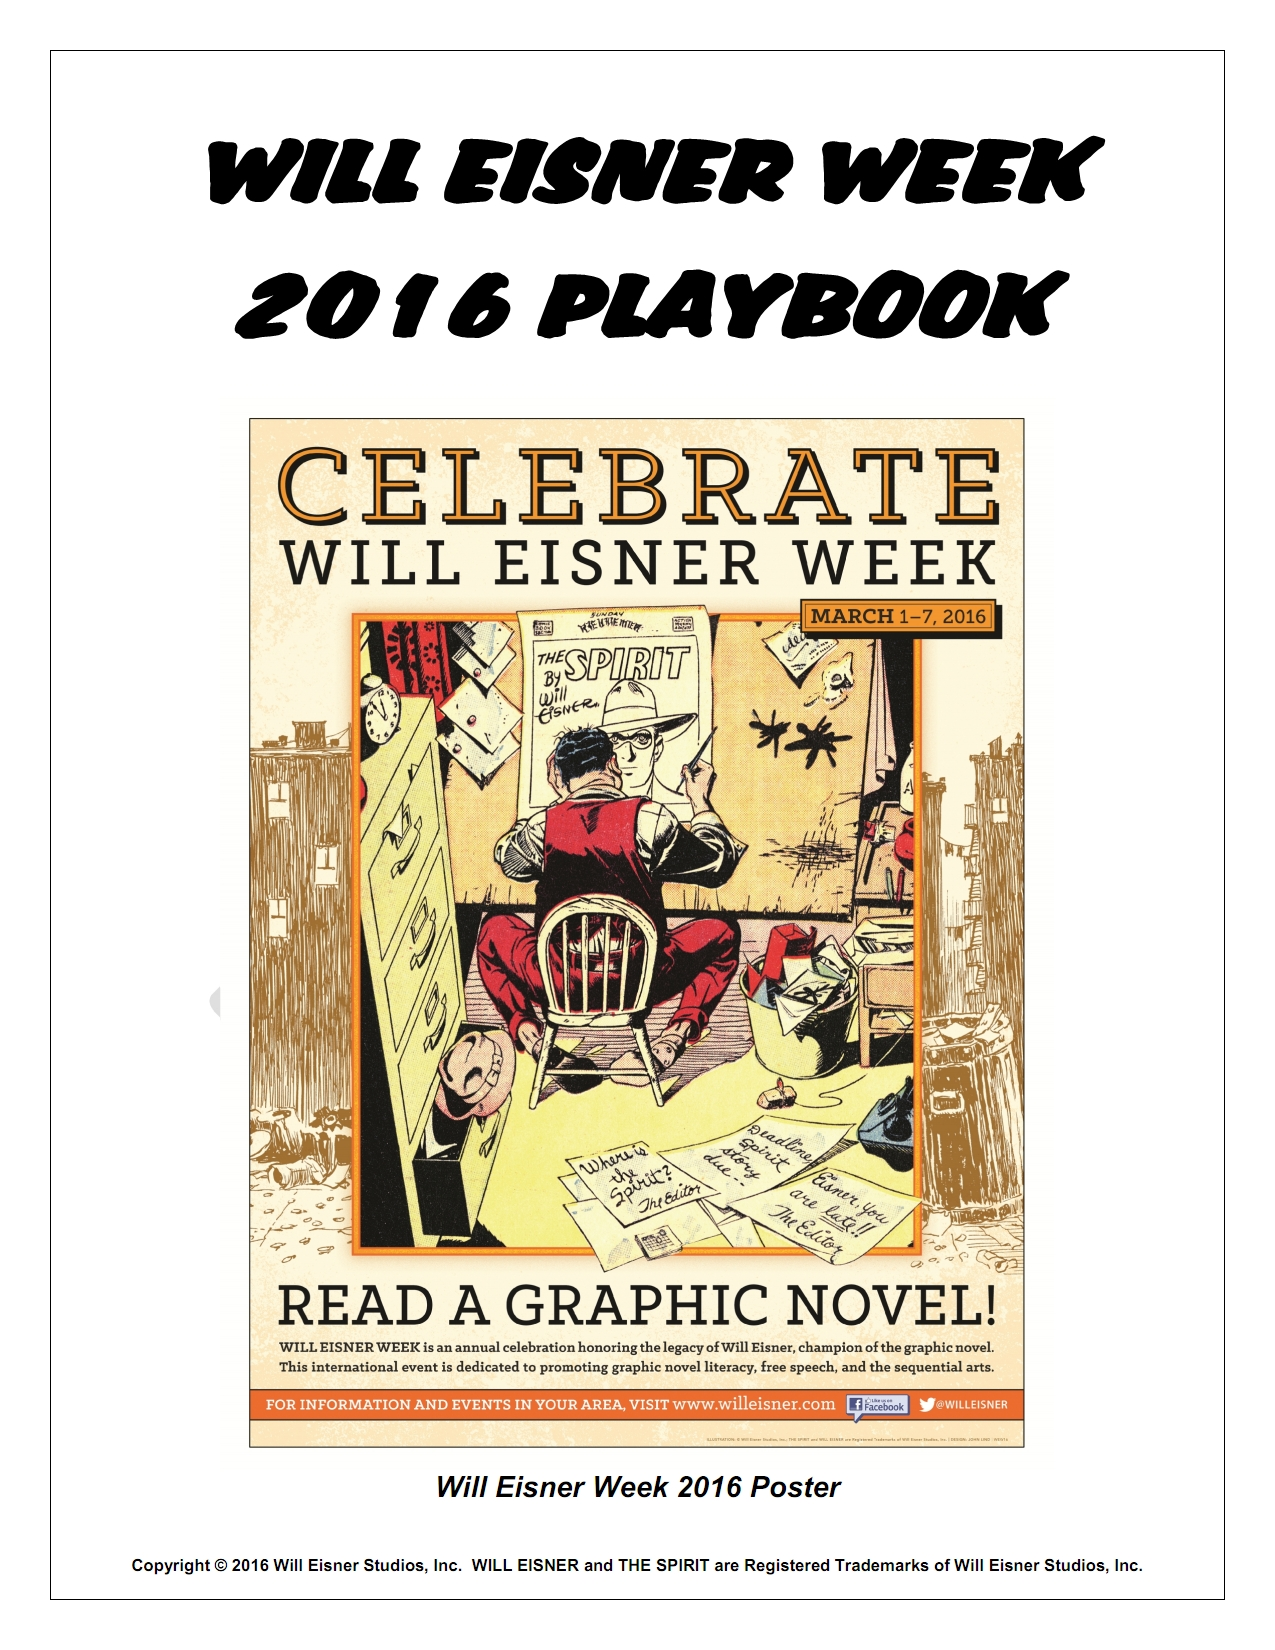 http://www.willeisner.com/the_eisnershpritz/WEFF_WEW2016_Playbook_Cover.jpg